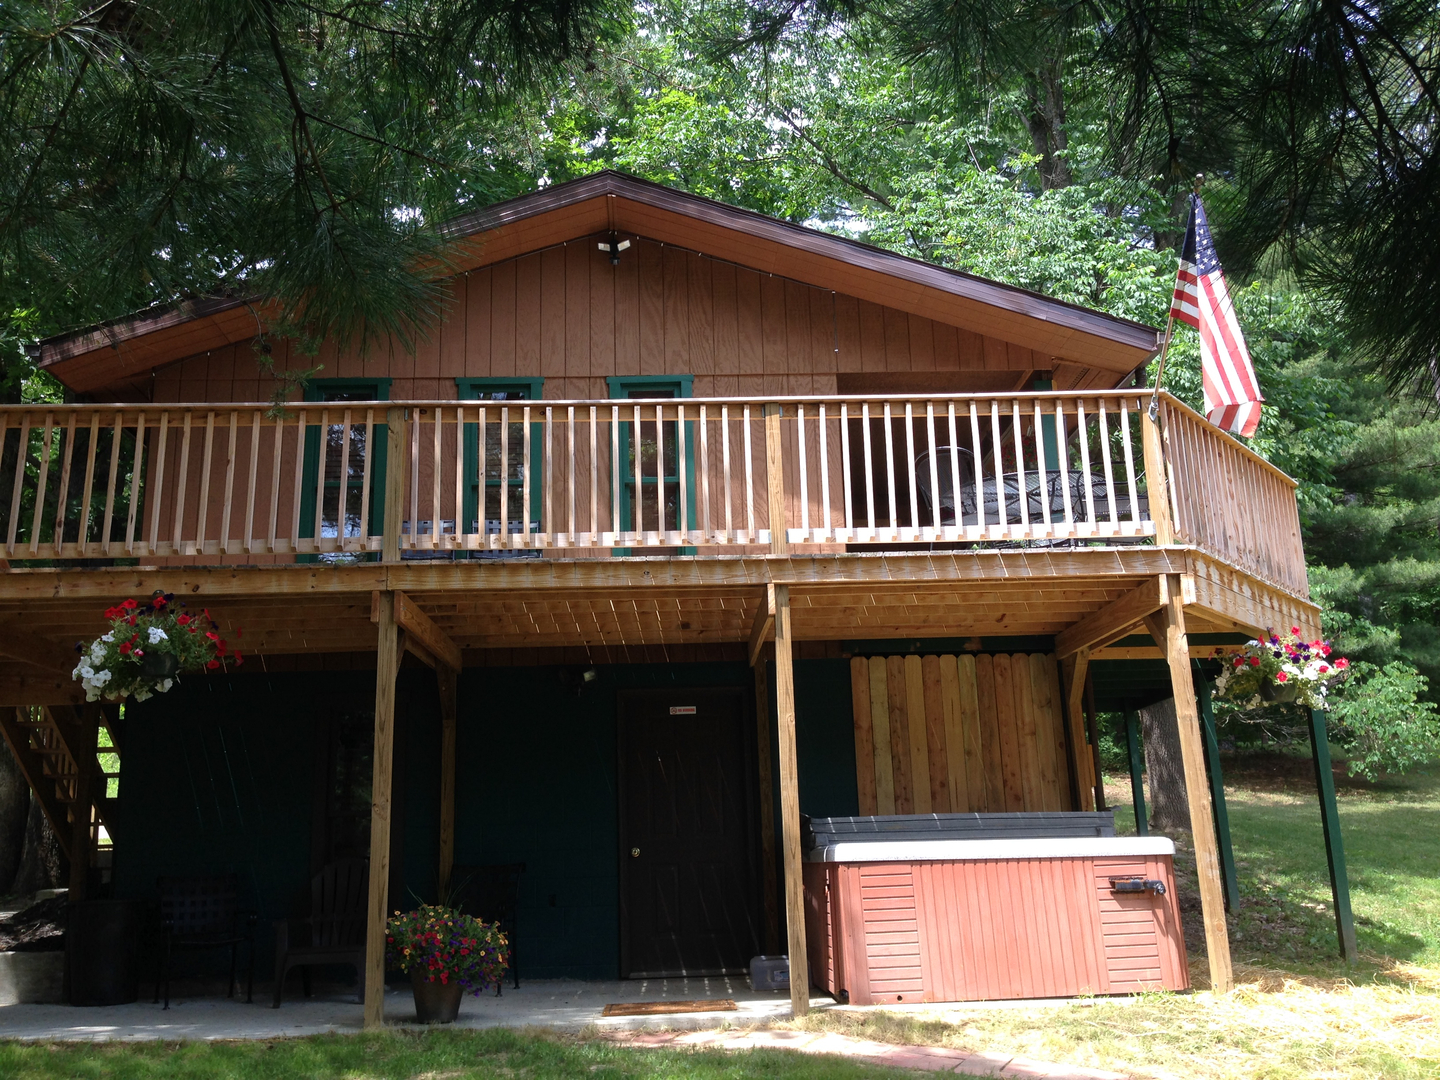 area log features lodge covered hocking parking rental rentals cabins large mountain cabin timbertrailcabin cheap ohio hills in decks